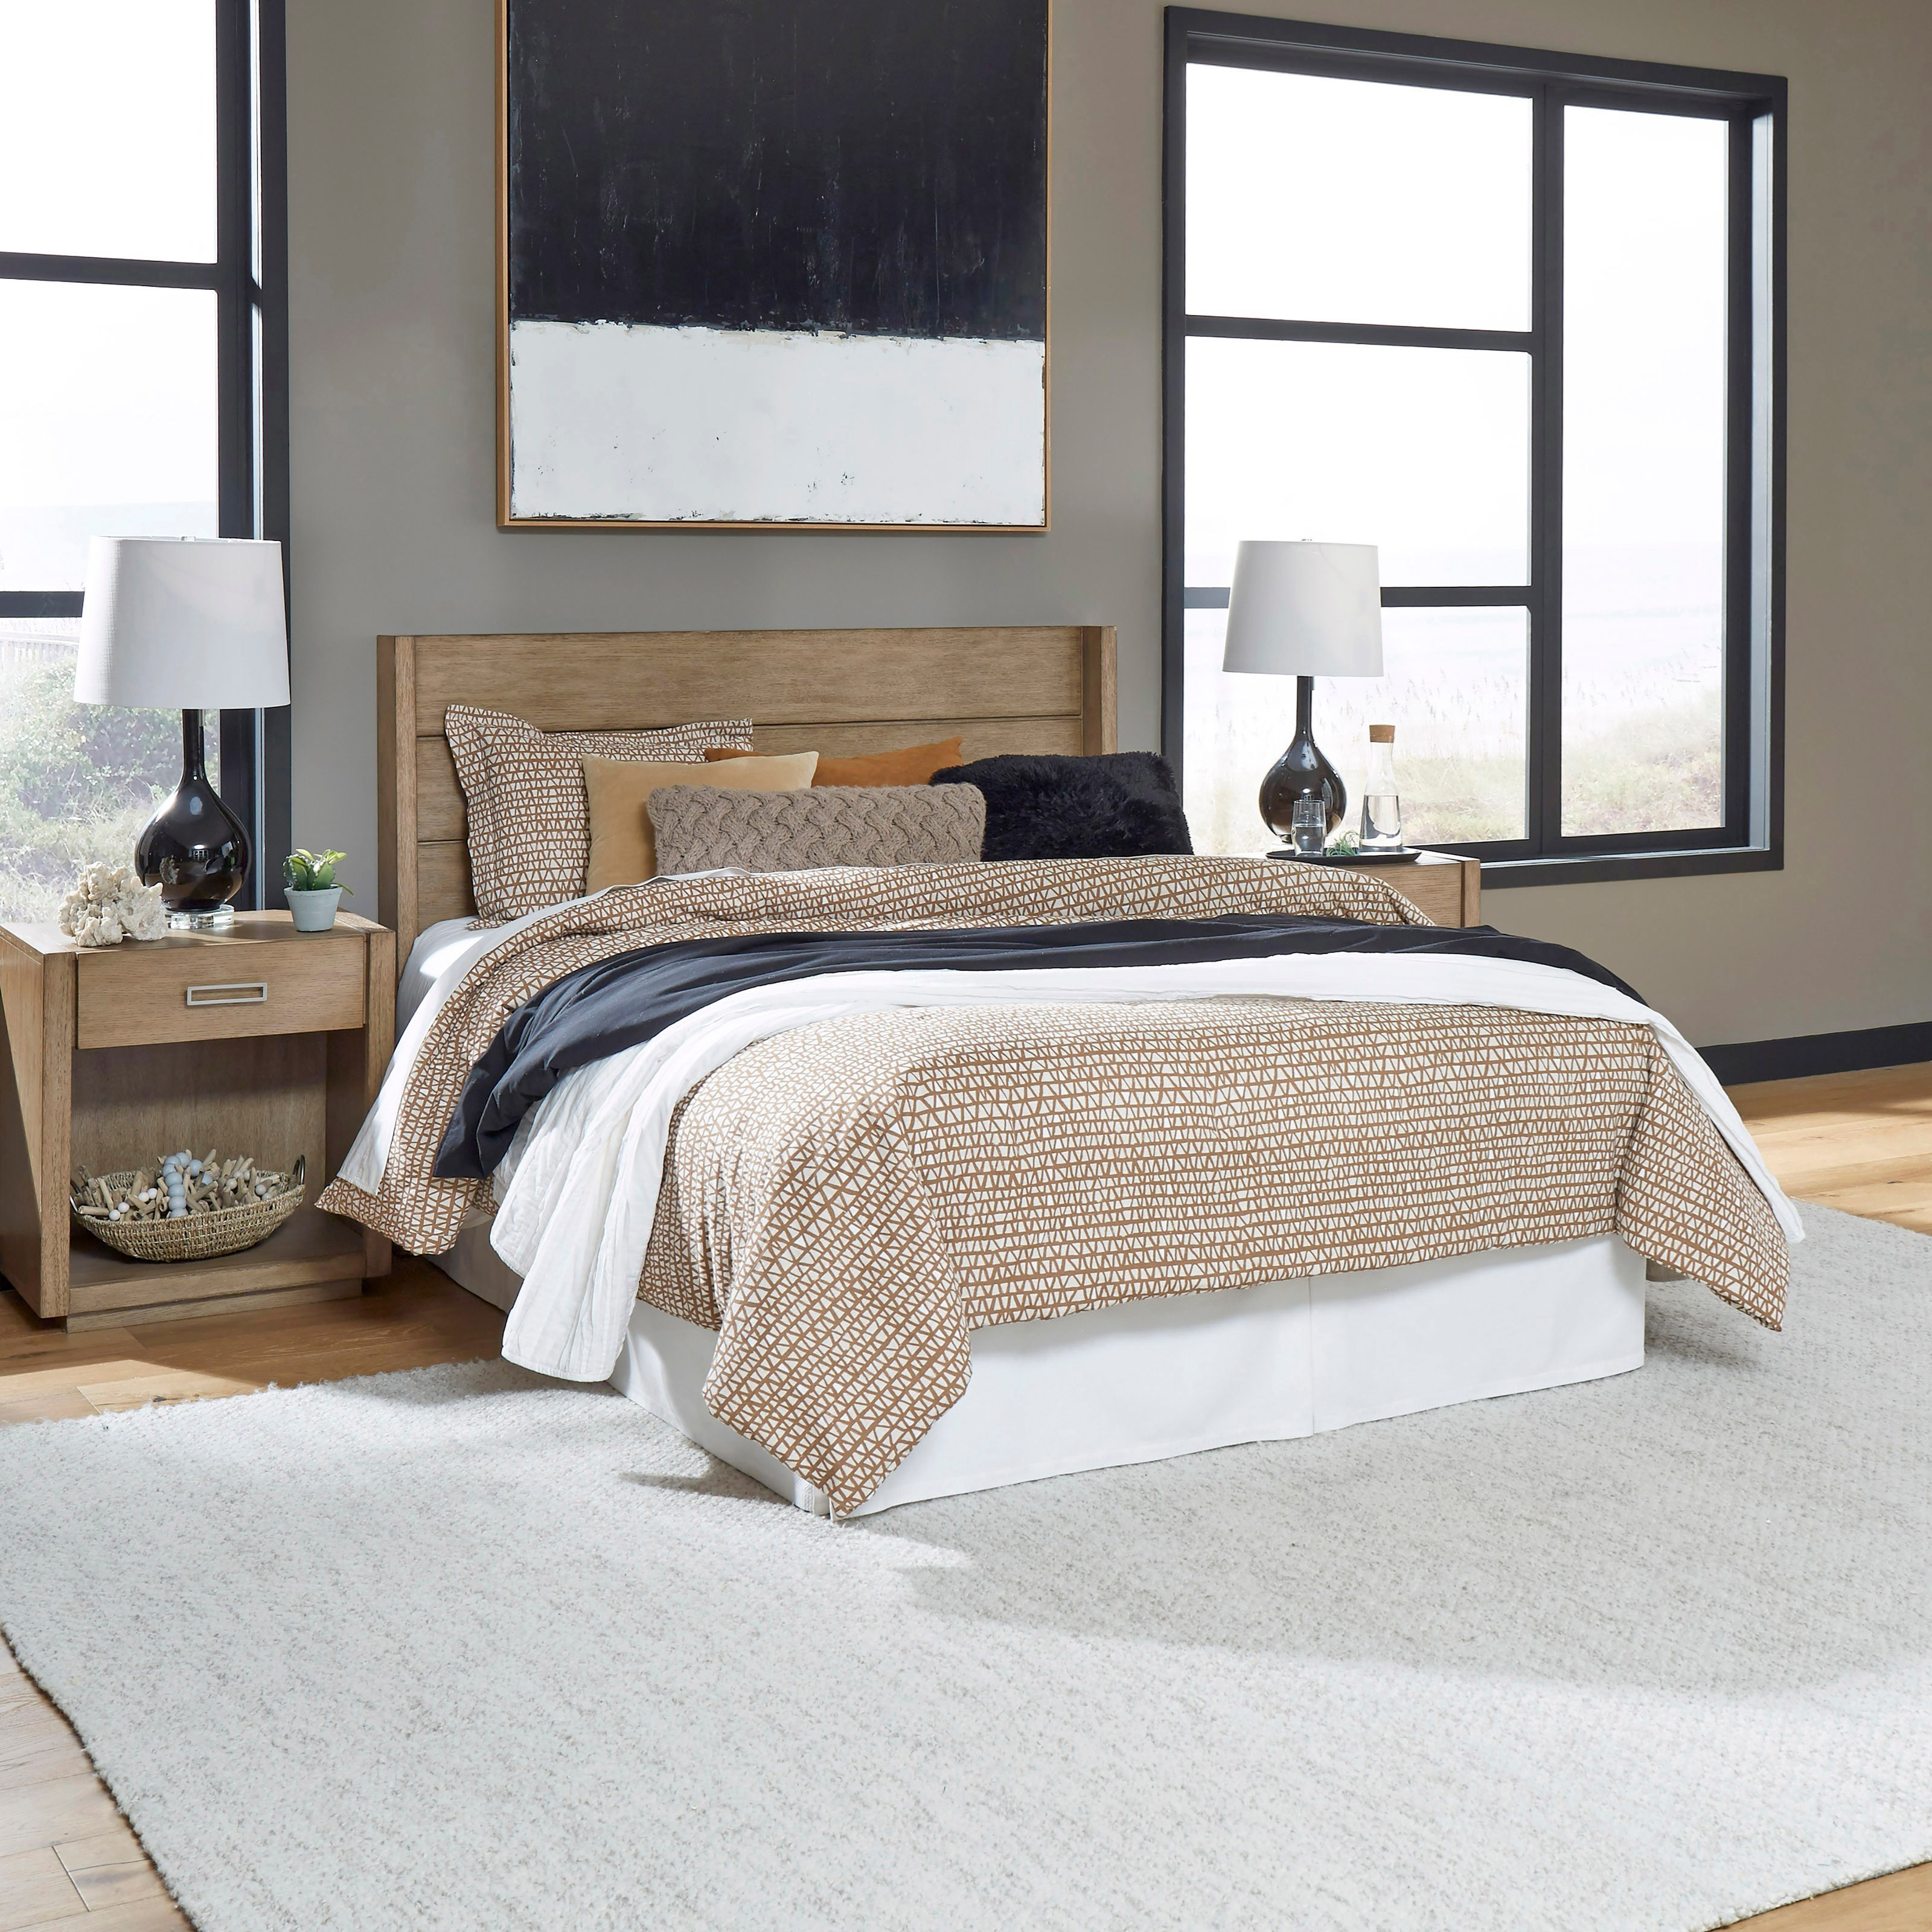 Big Sur Queen Bedroom Group by Homestyles at Northeast Factory Direct